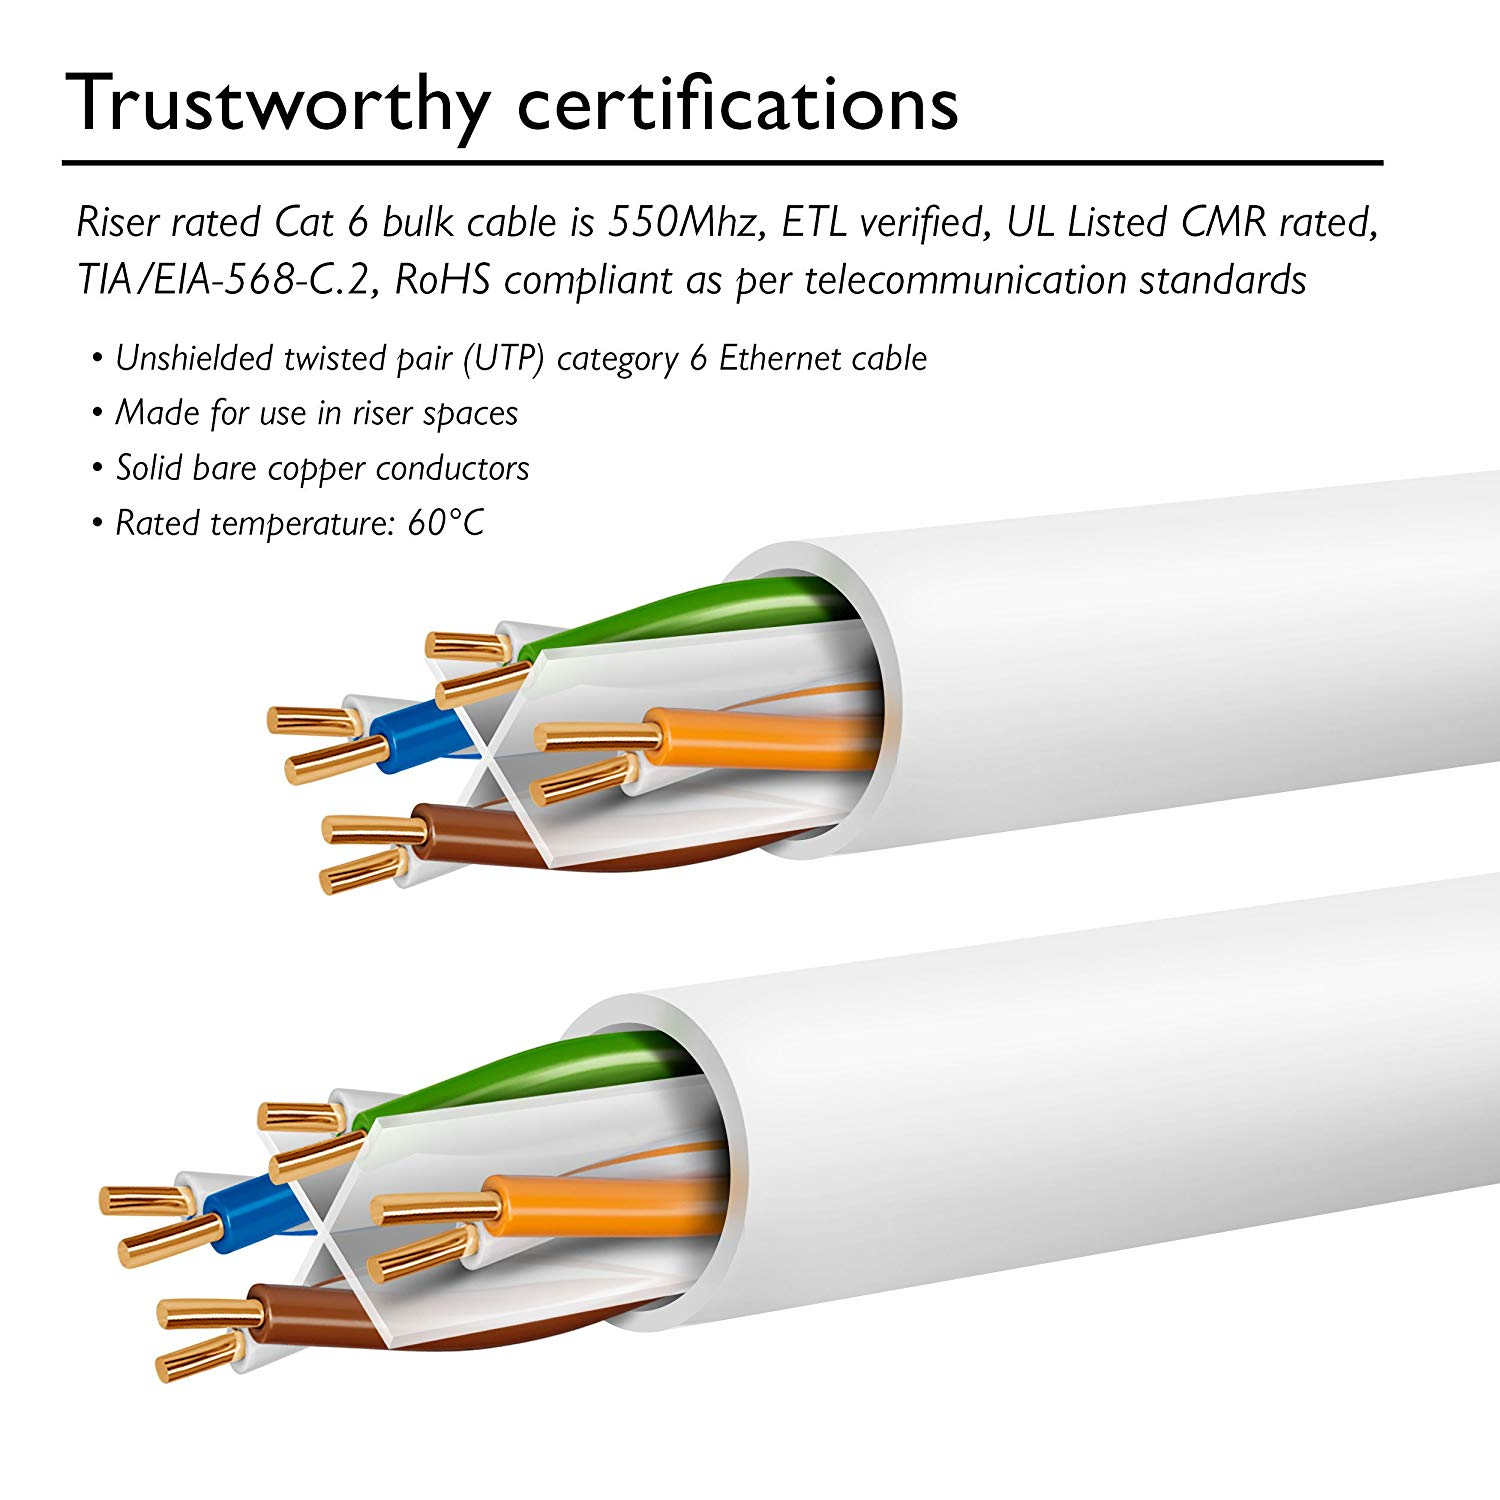 cat 6 wiring diagram riser vf 4574  cat 6 568c cable wiring diagram schematic wiring  cat 6 568c cable wiring diagram